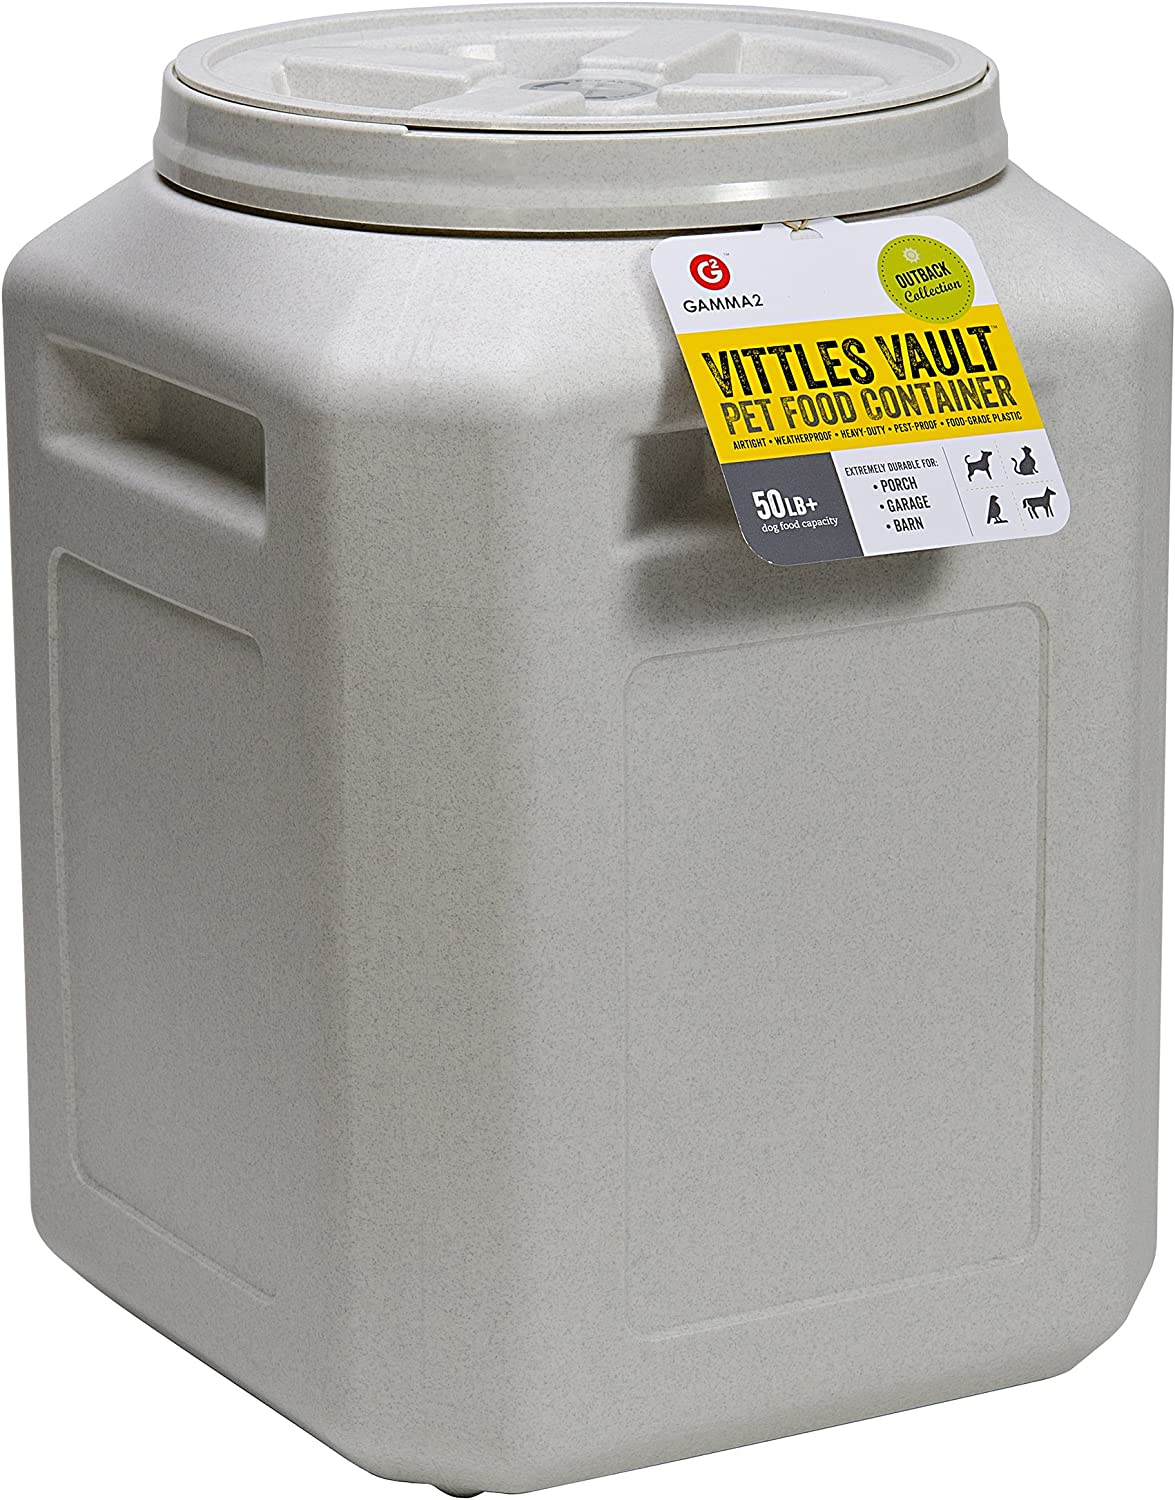 Gamma2 Vittles Vault Outback 50 lb Airtight Pet Food Storage Container, Warm Granite: Grocery & Gourmet Food